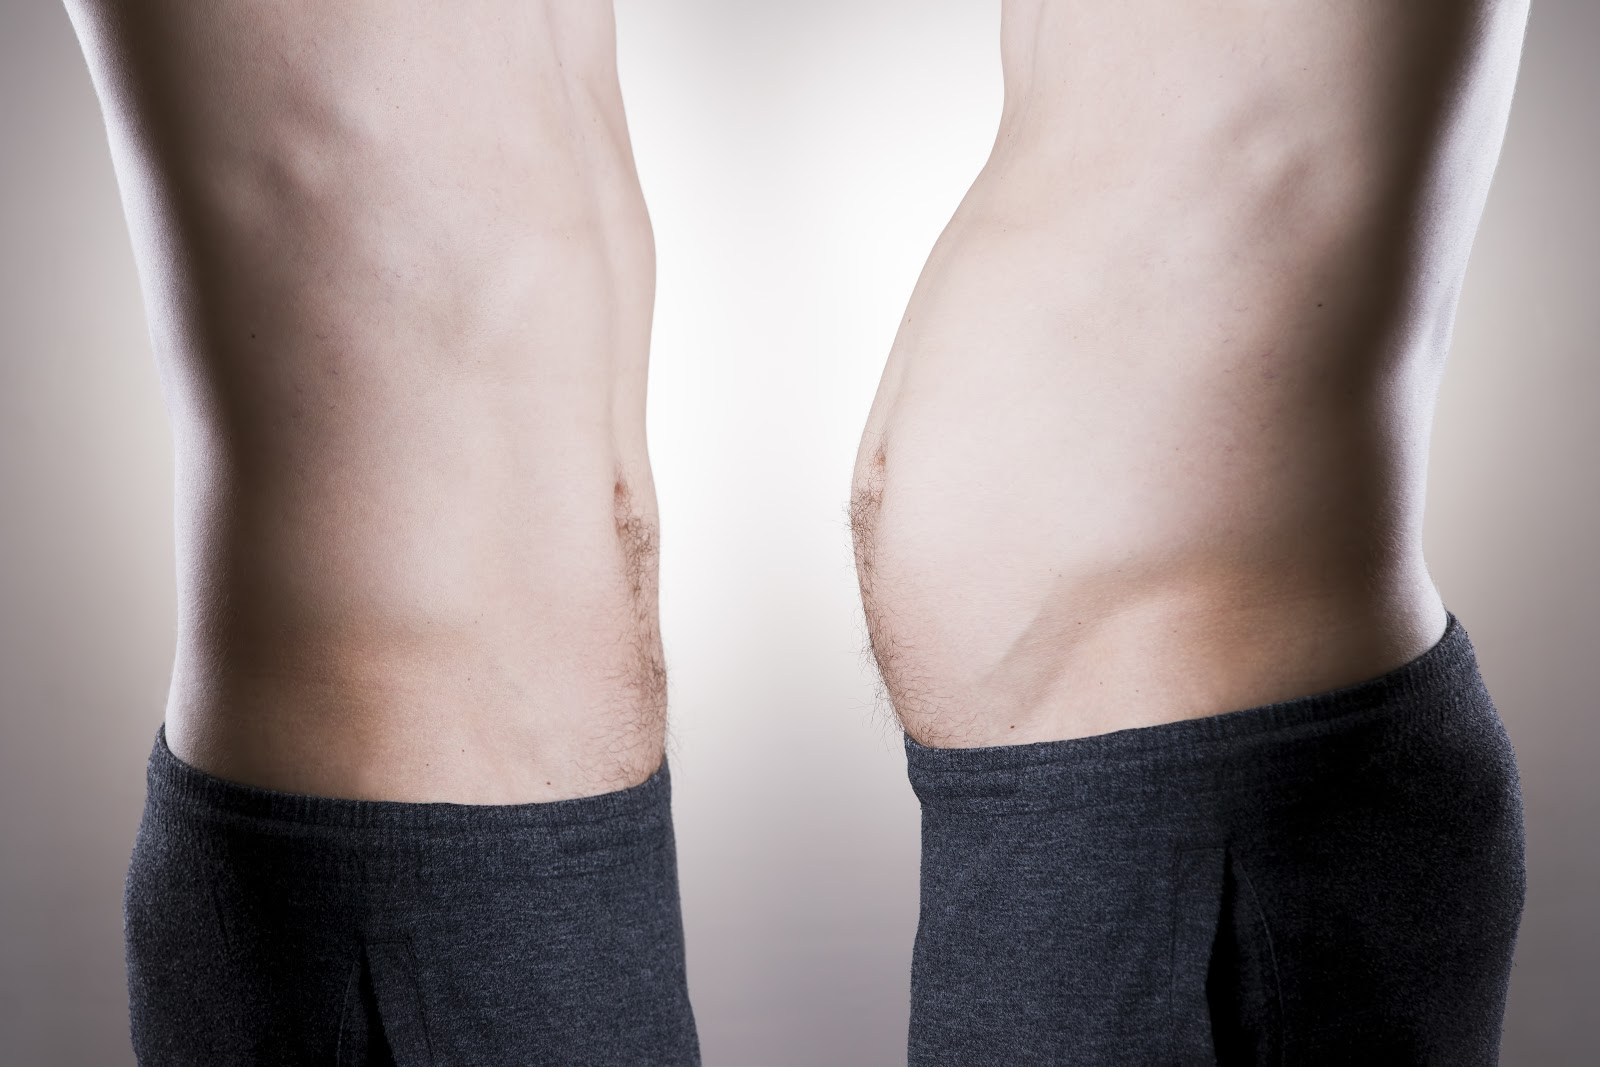 Man before and after weight loss. Fat and slim body on a gray background